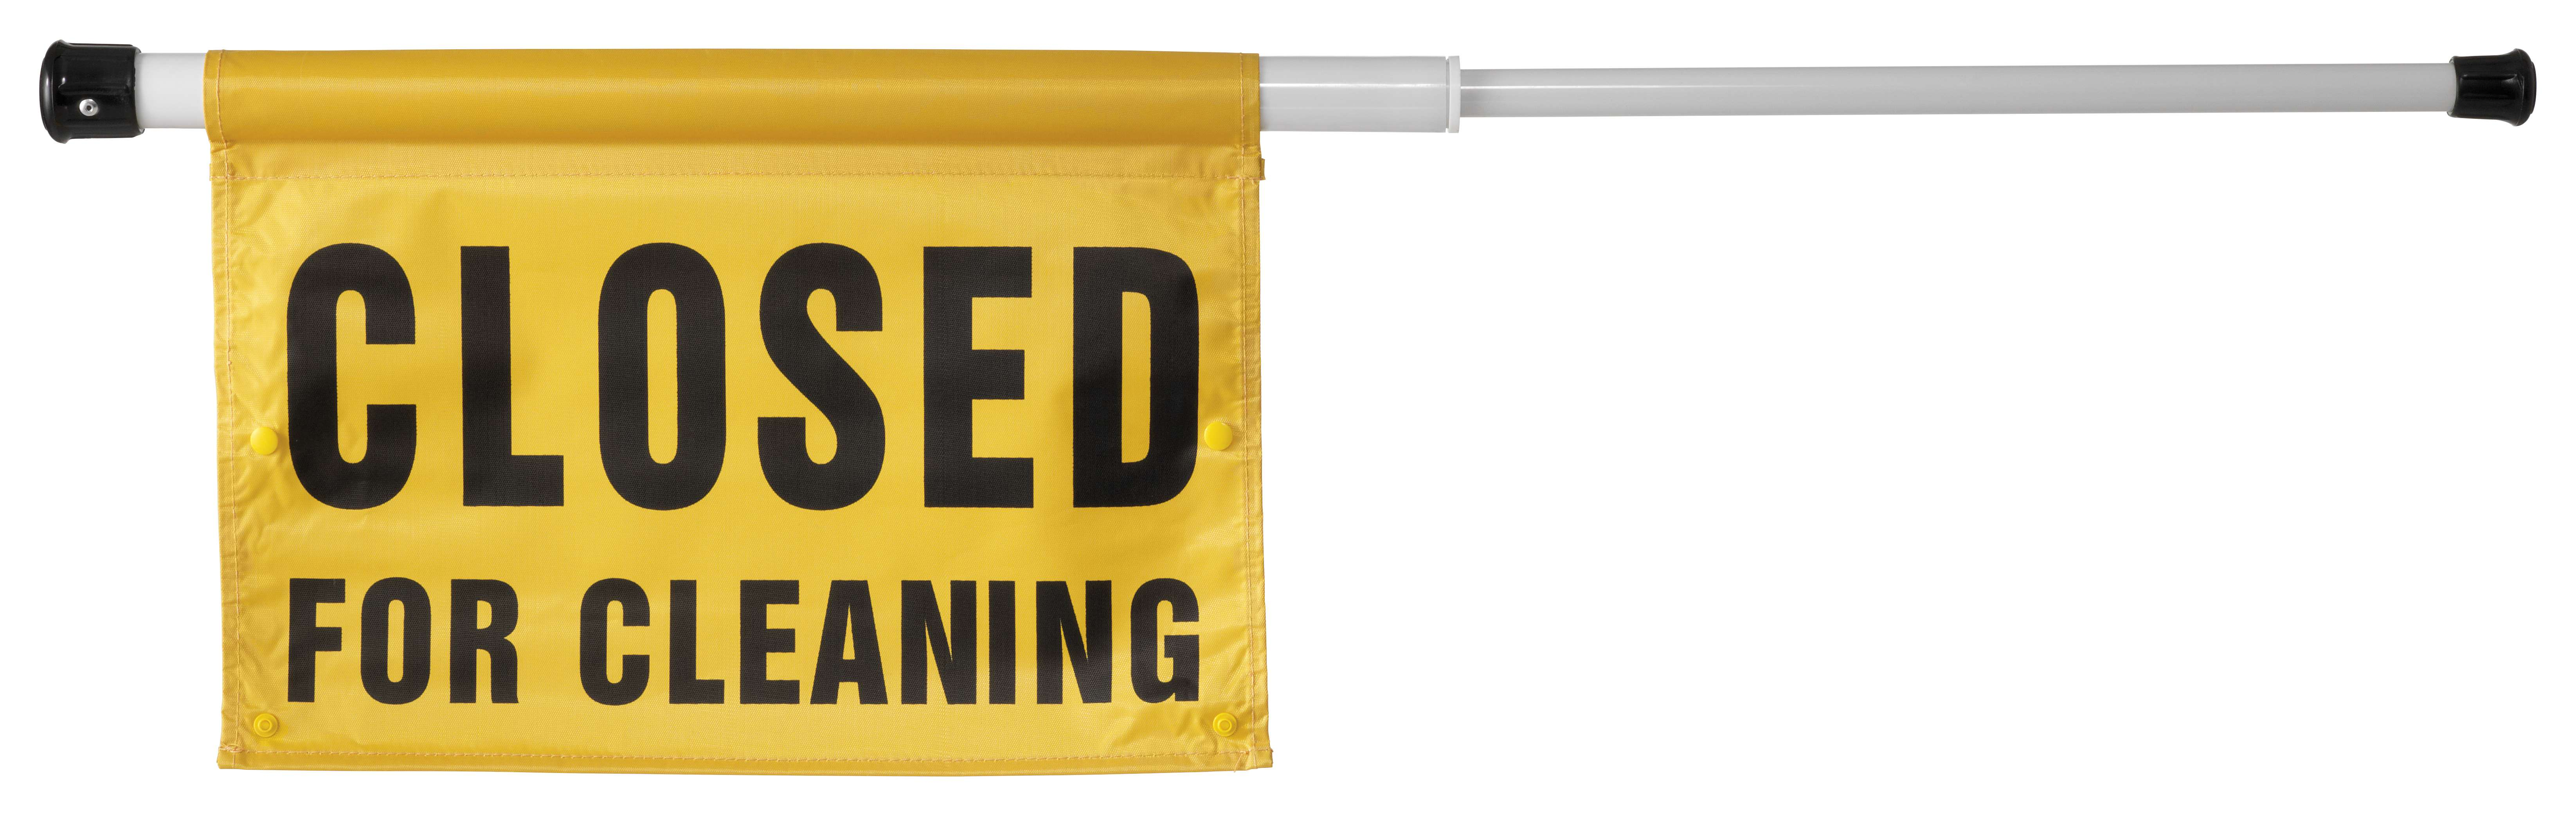 Spring Loaded Caution Sign Powervac Cleaning Equipment